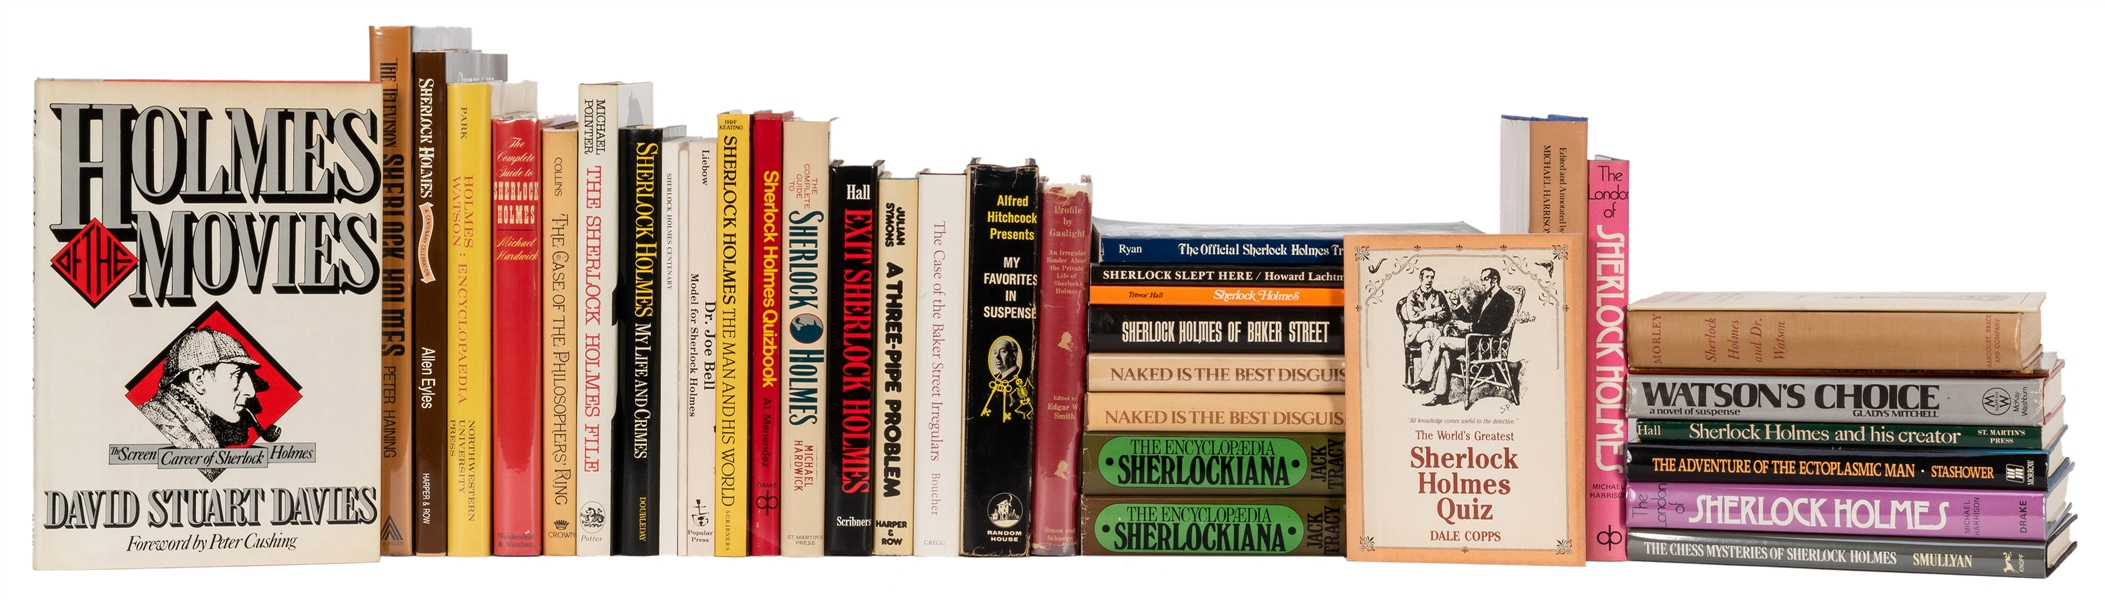 "A Large Collection of ""Sherlockiana"" Including Books, Magazines, and Journals."